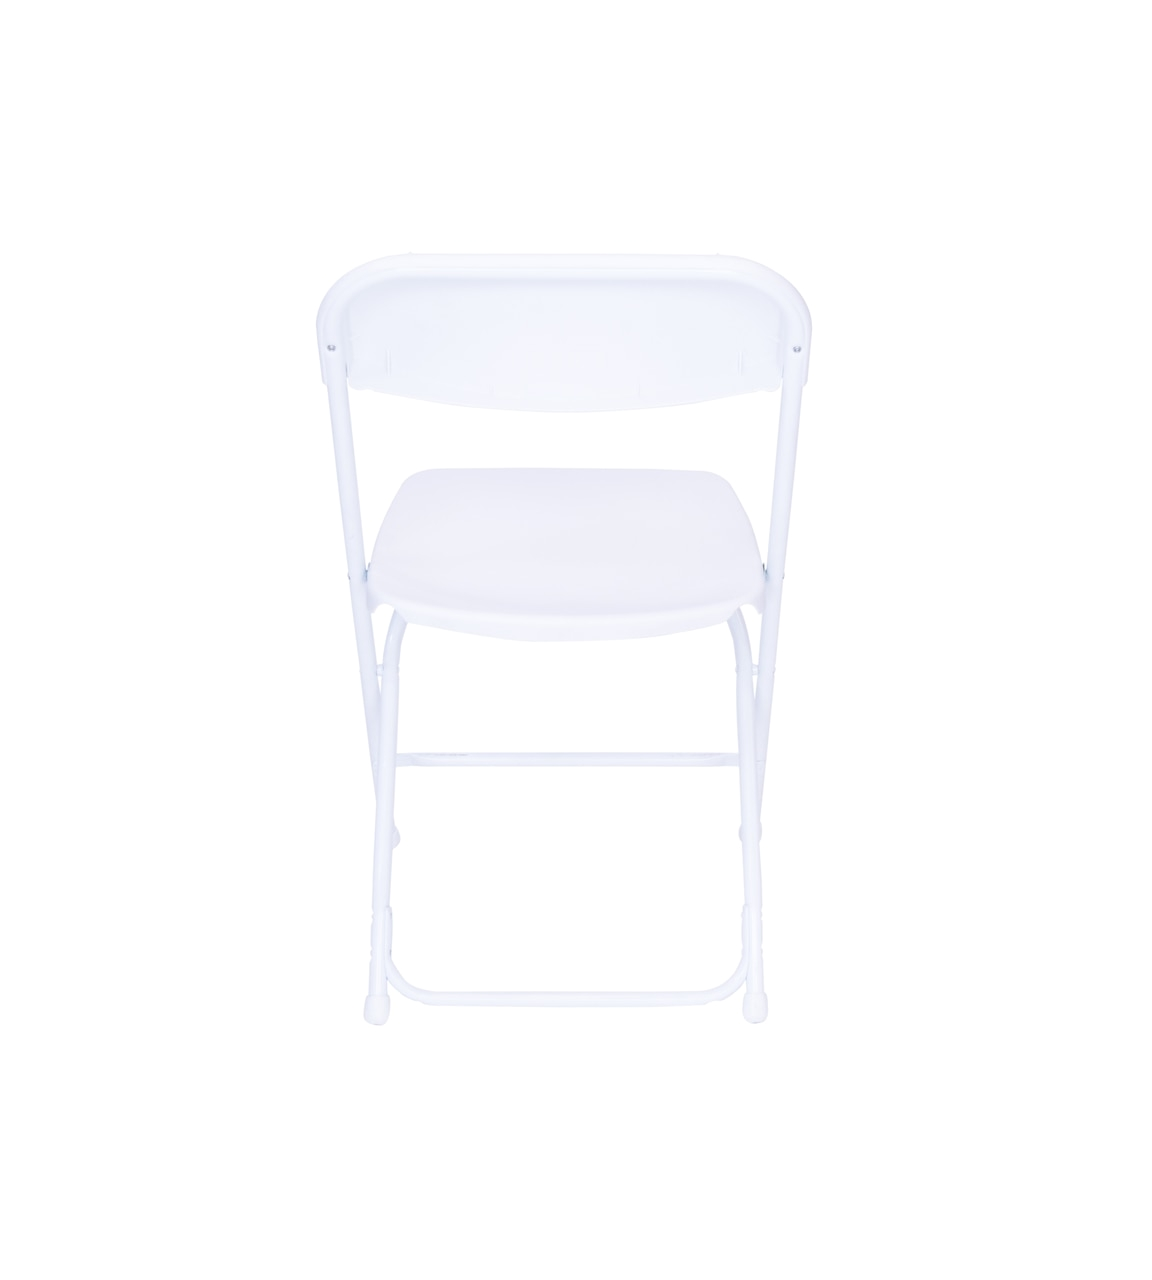 Brown Wooden Chairs for Rent White Plastic Folding Chair Premium Rental Style